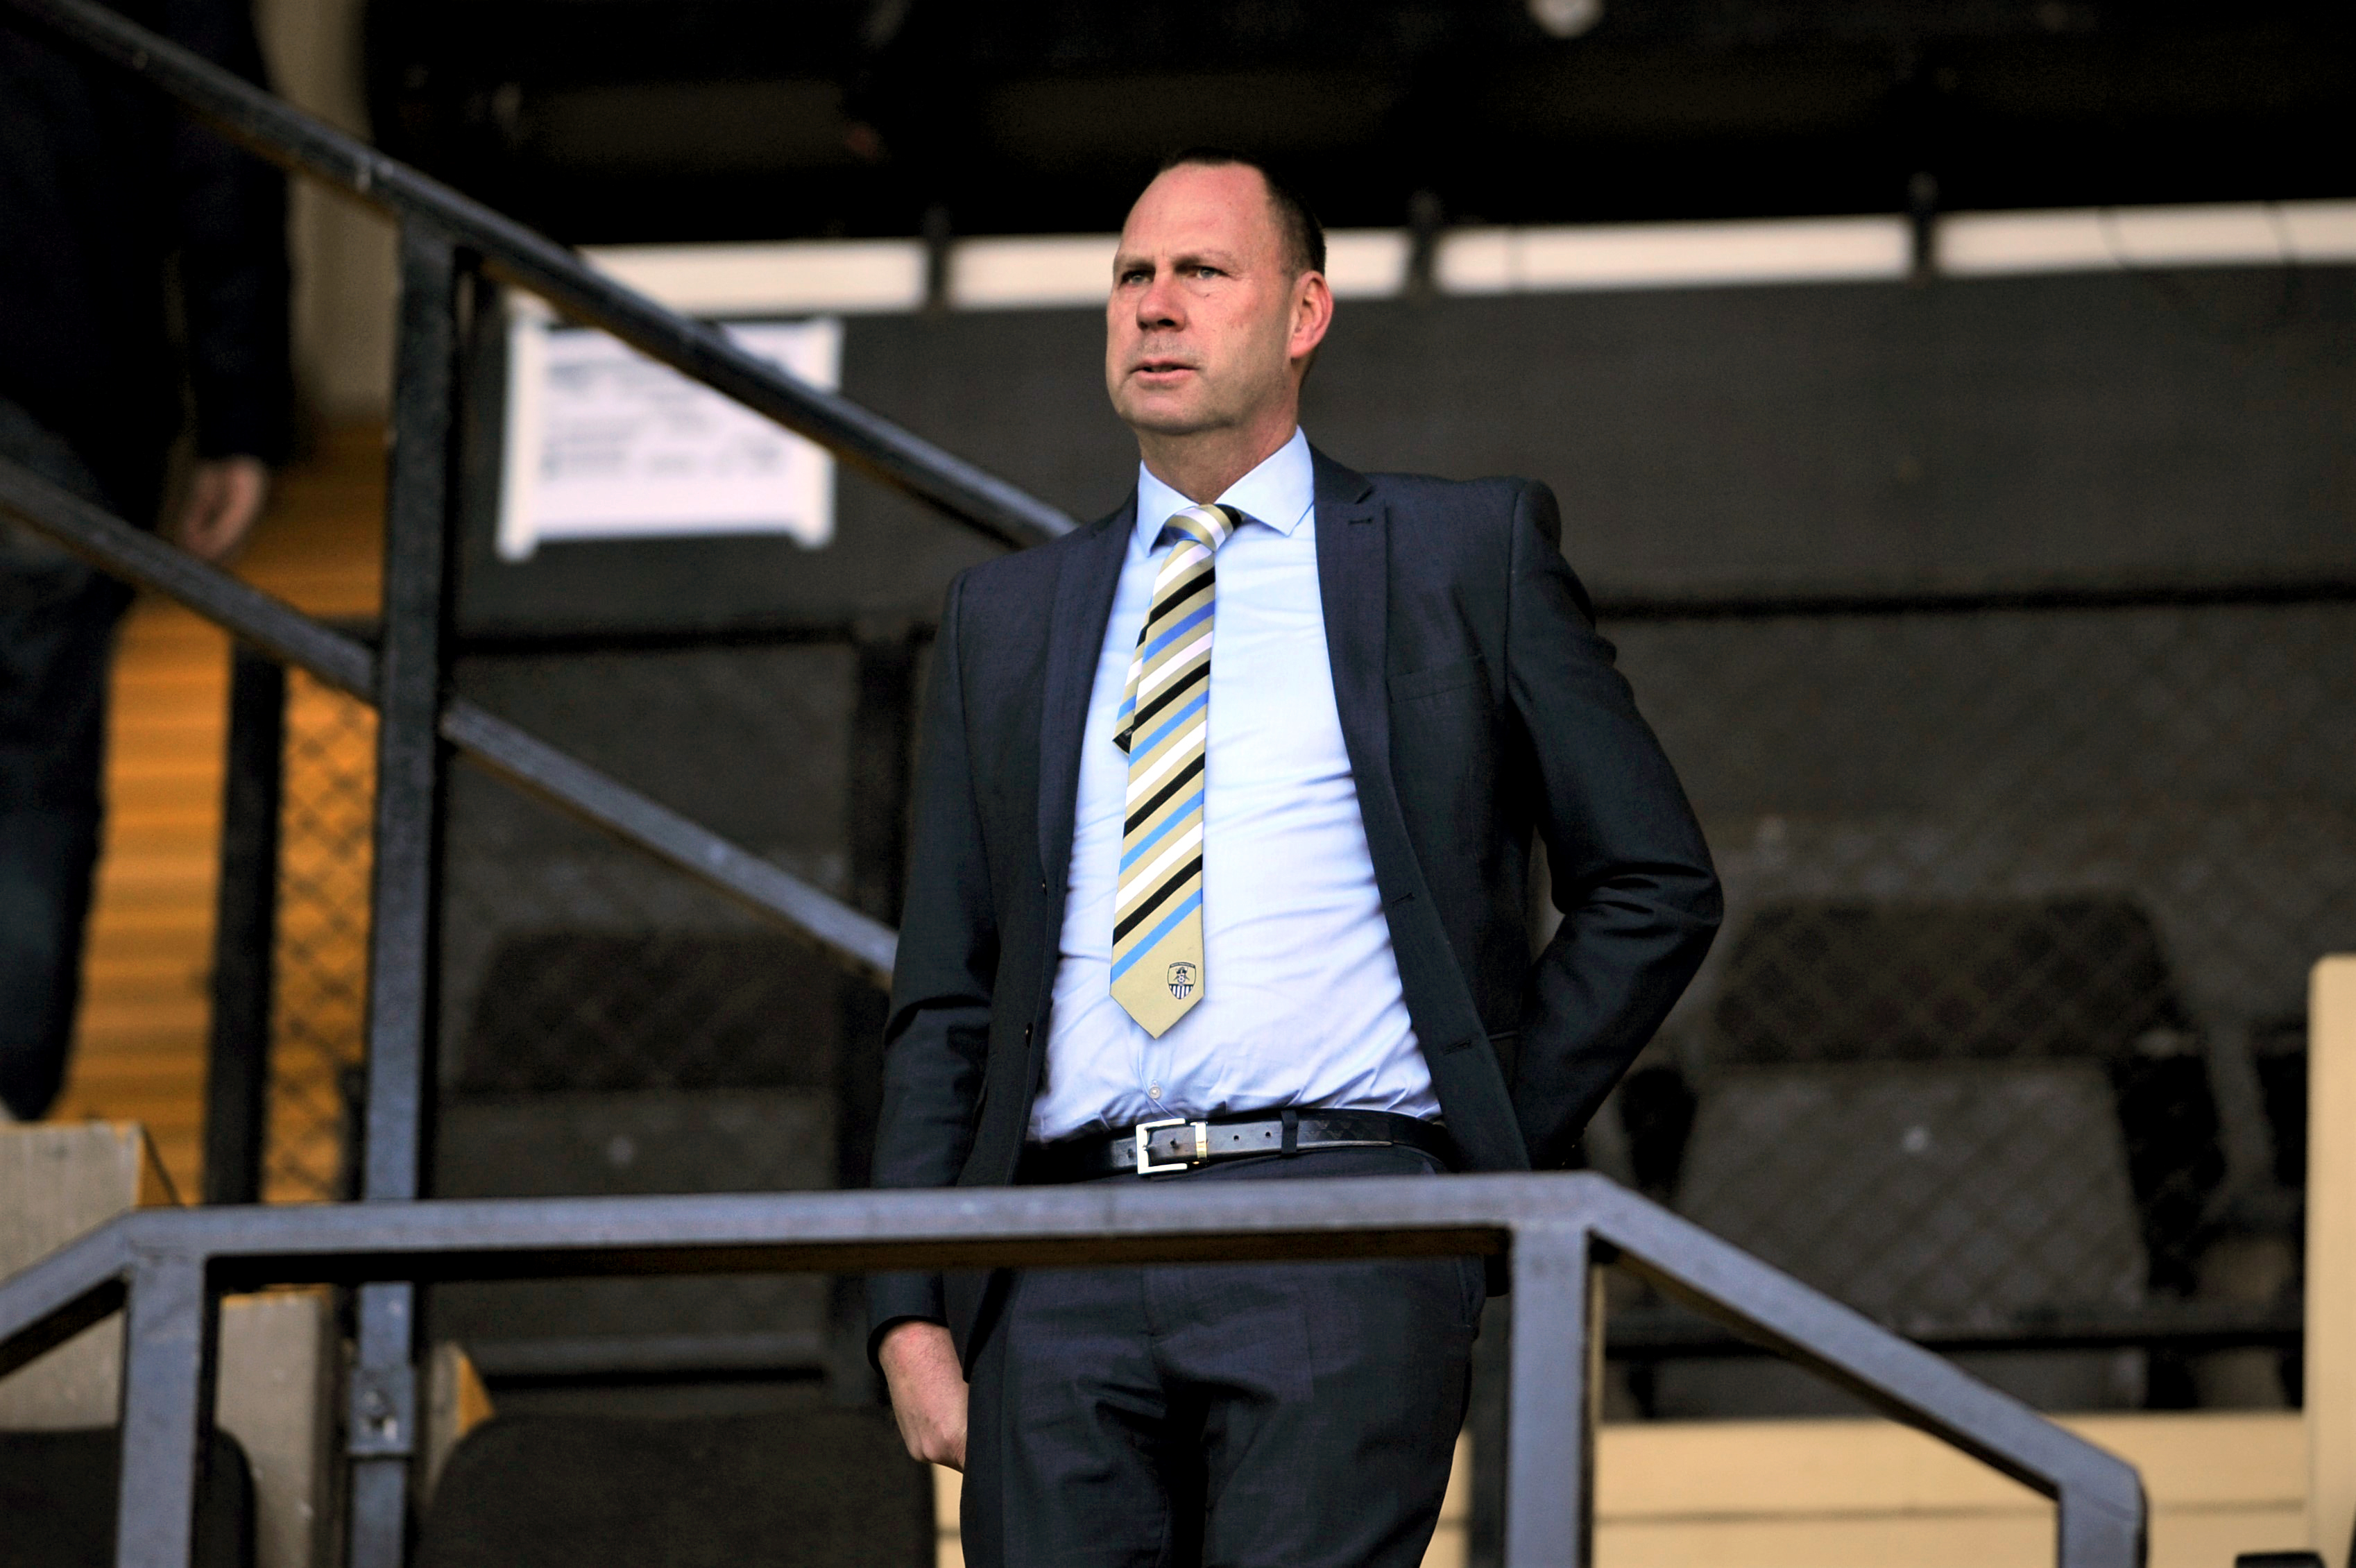 Notts County owner Alan Hardy